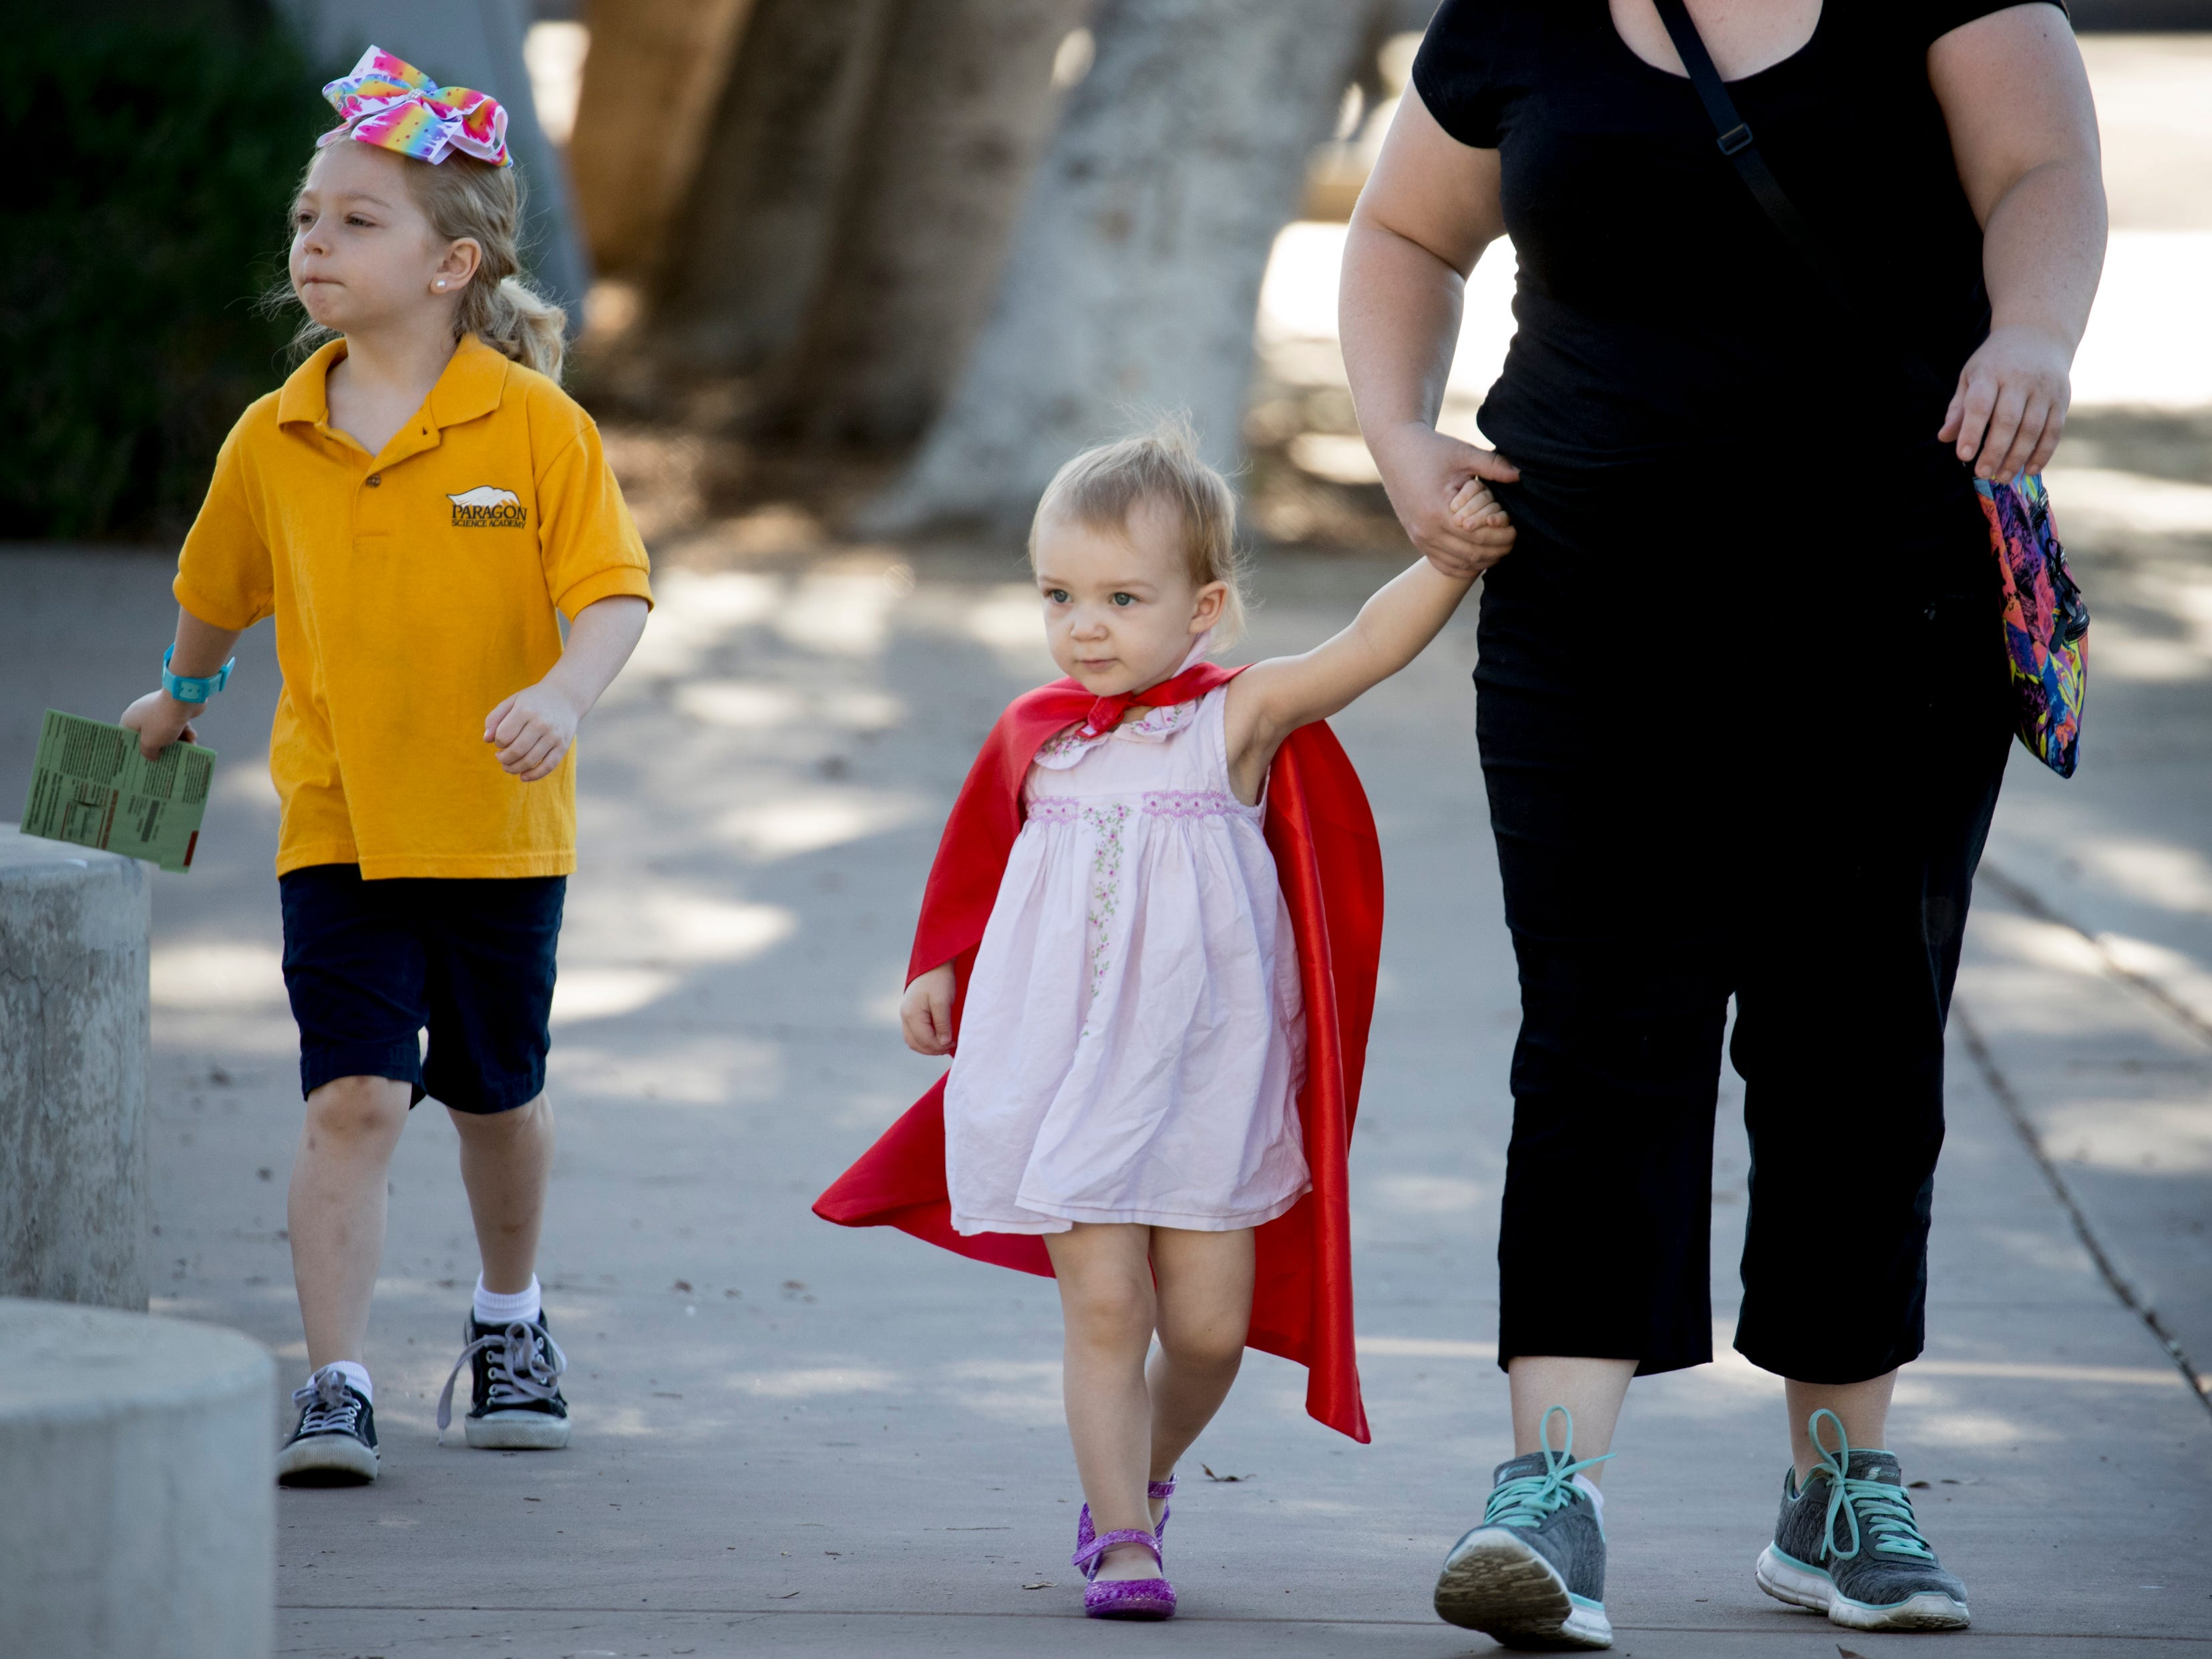 Adina Anhalt (right) and her daughters, Abigail (left, 7) and Evelyn (center, 2) arrive to drop off her ballot, Aug. 28, 2018, at the Escalante Community Center polling place, 2150 E. Orange Street in Tempe.